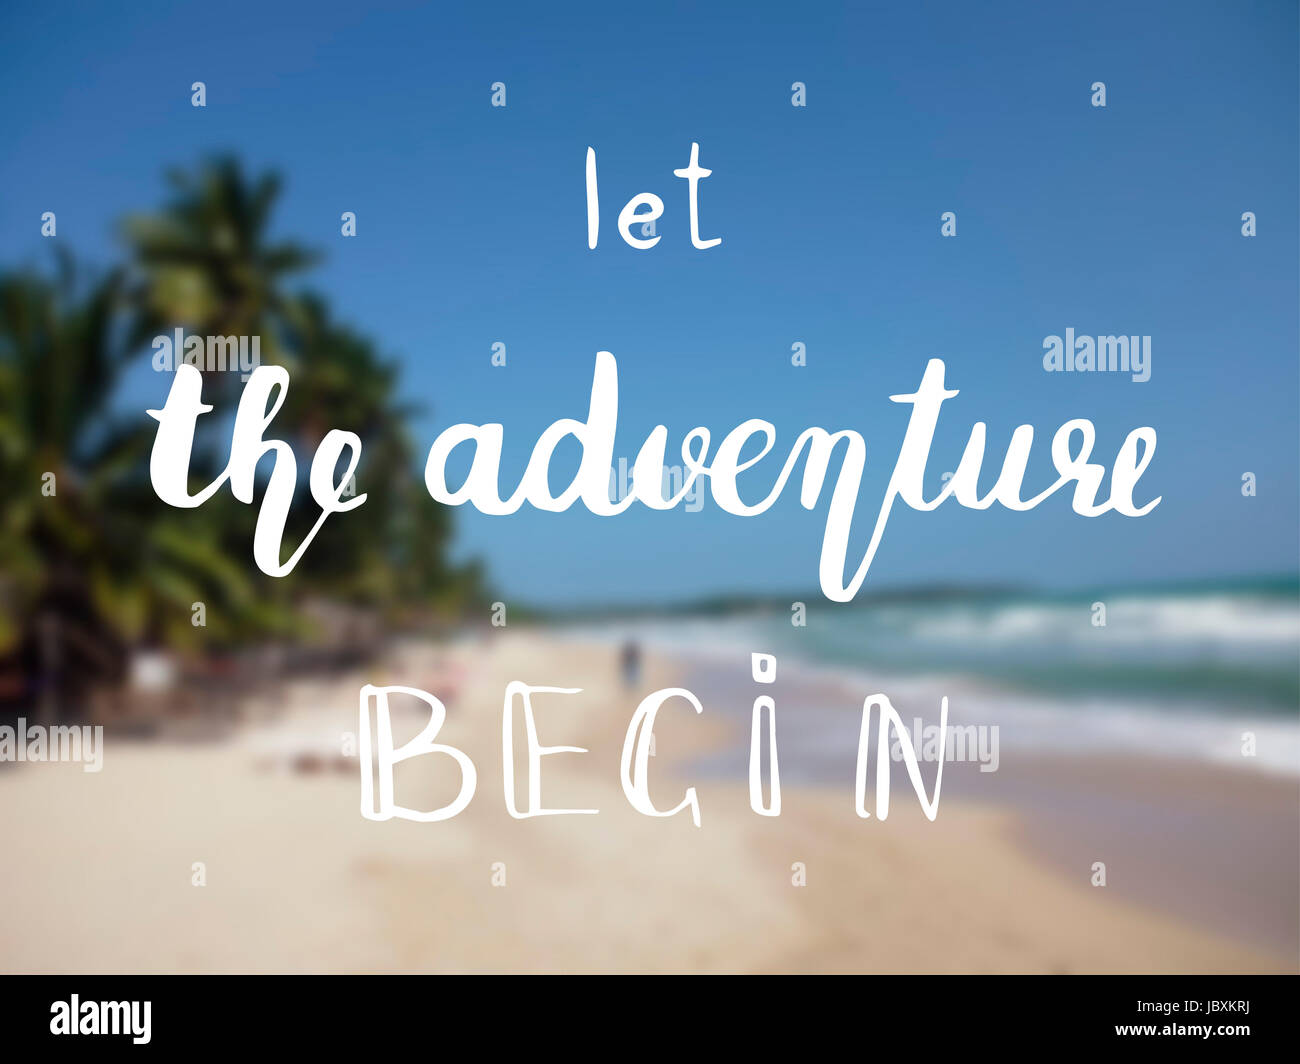 Inspiration Quotes The Adventure Begins Life Style Inspiration Quotes Lettering Stock